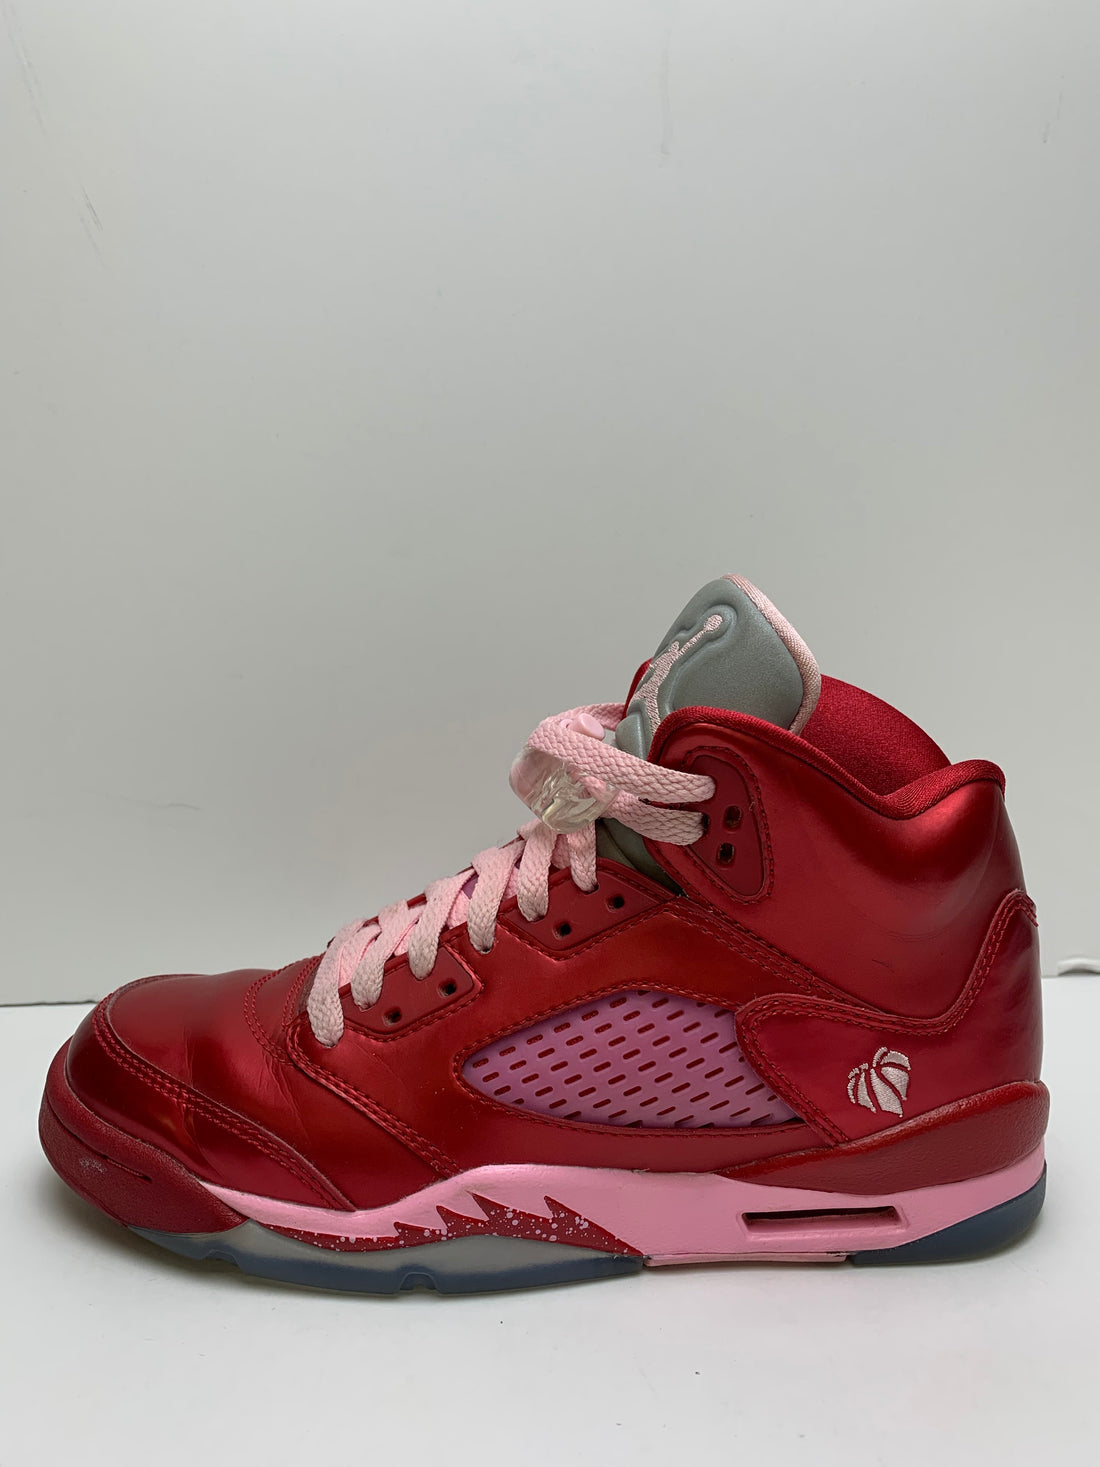 Jordan 5 Retro Valentines Day (GS)